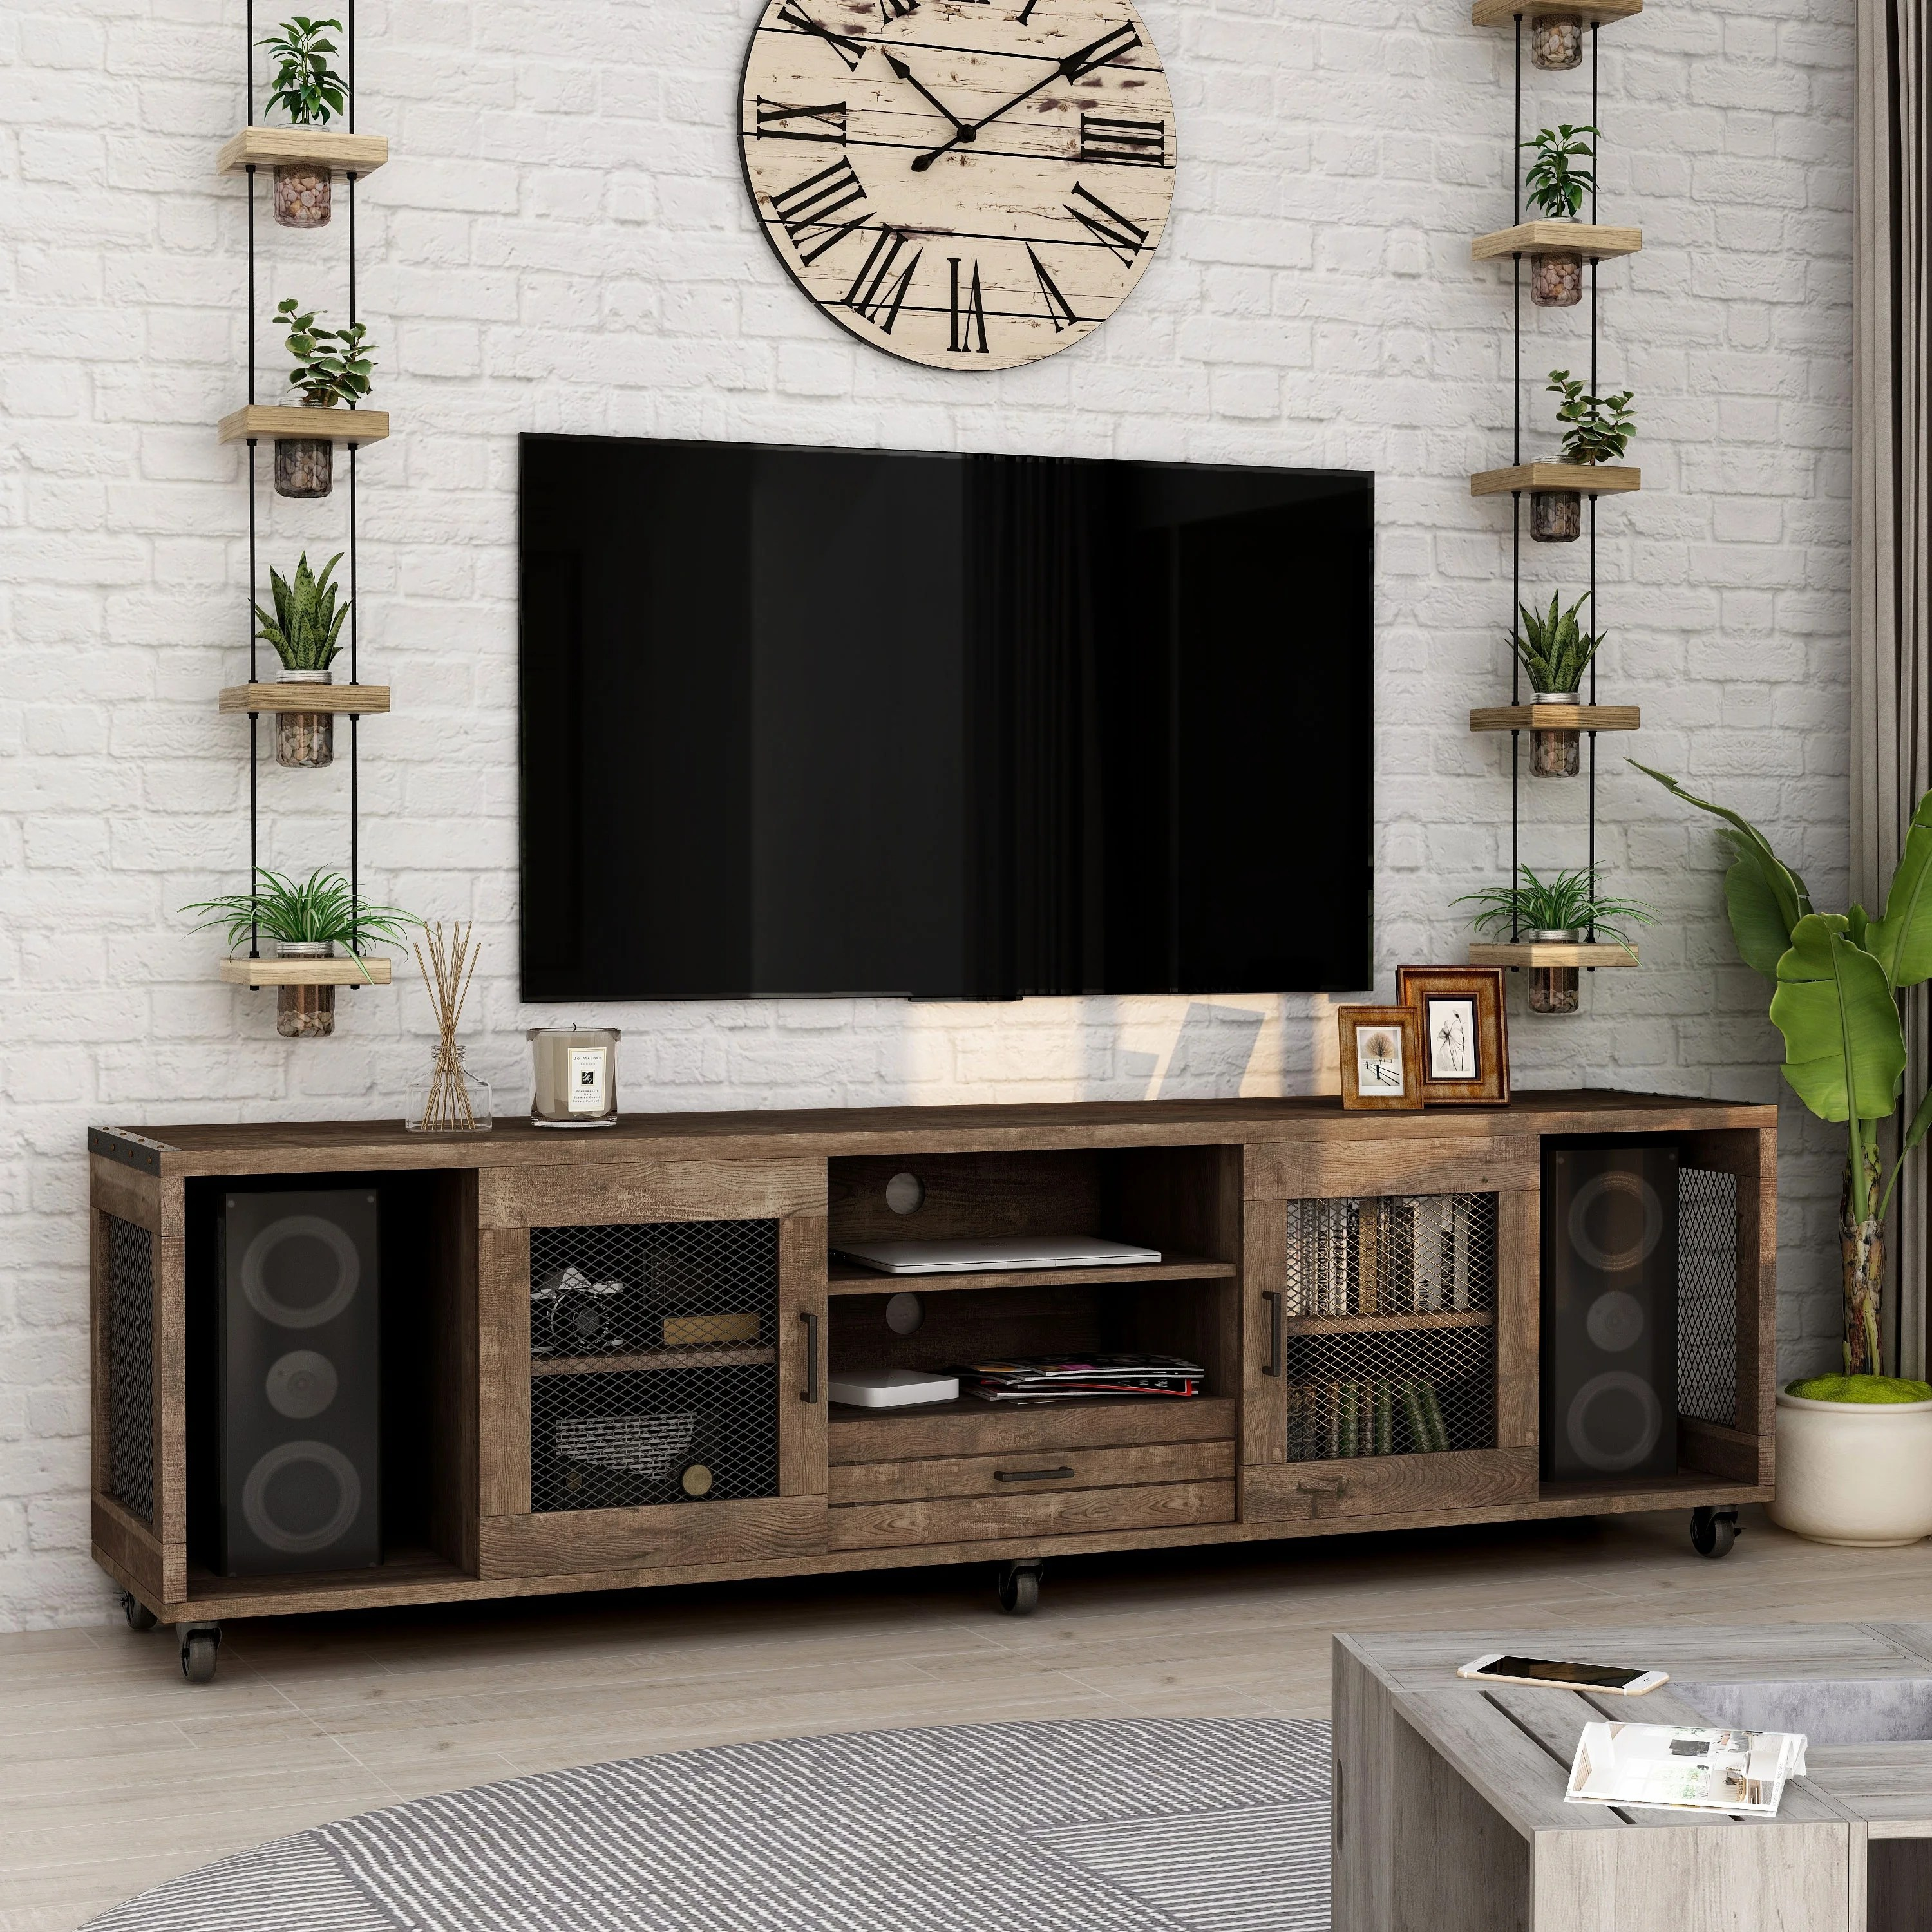 furniture of america hury industrial 70 inch tv stand